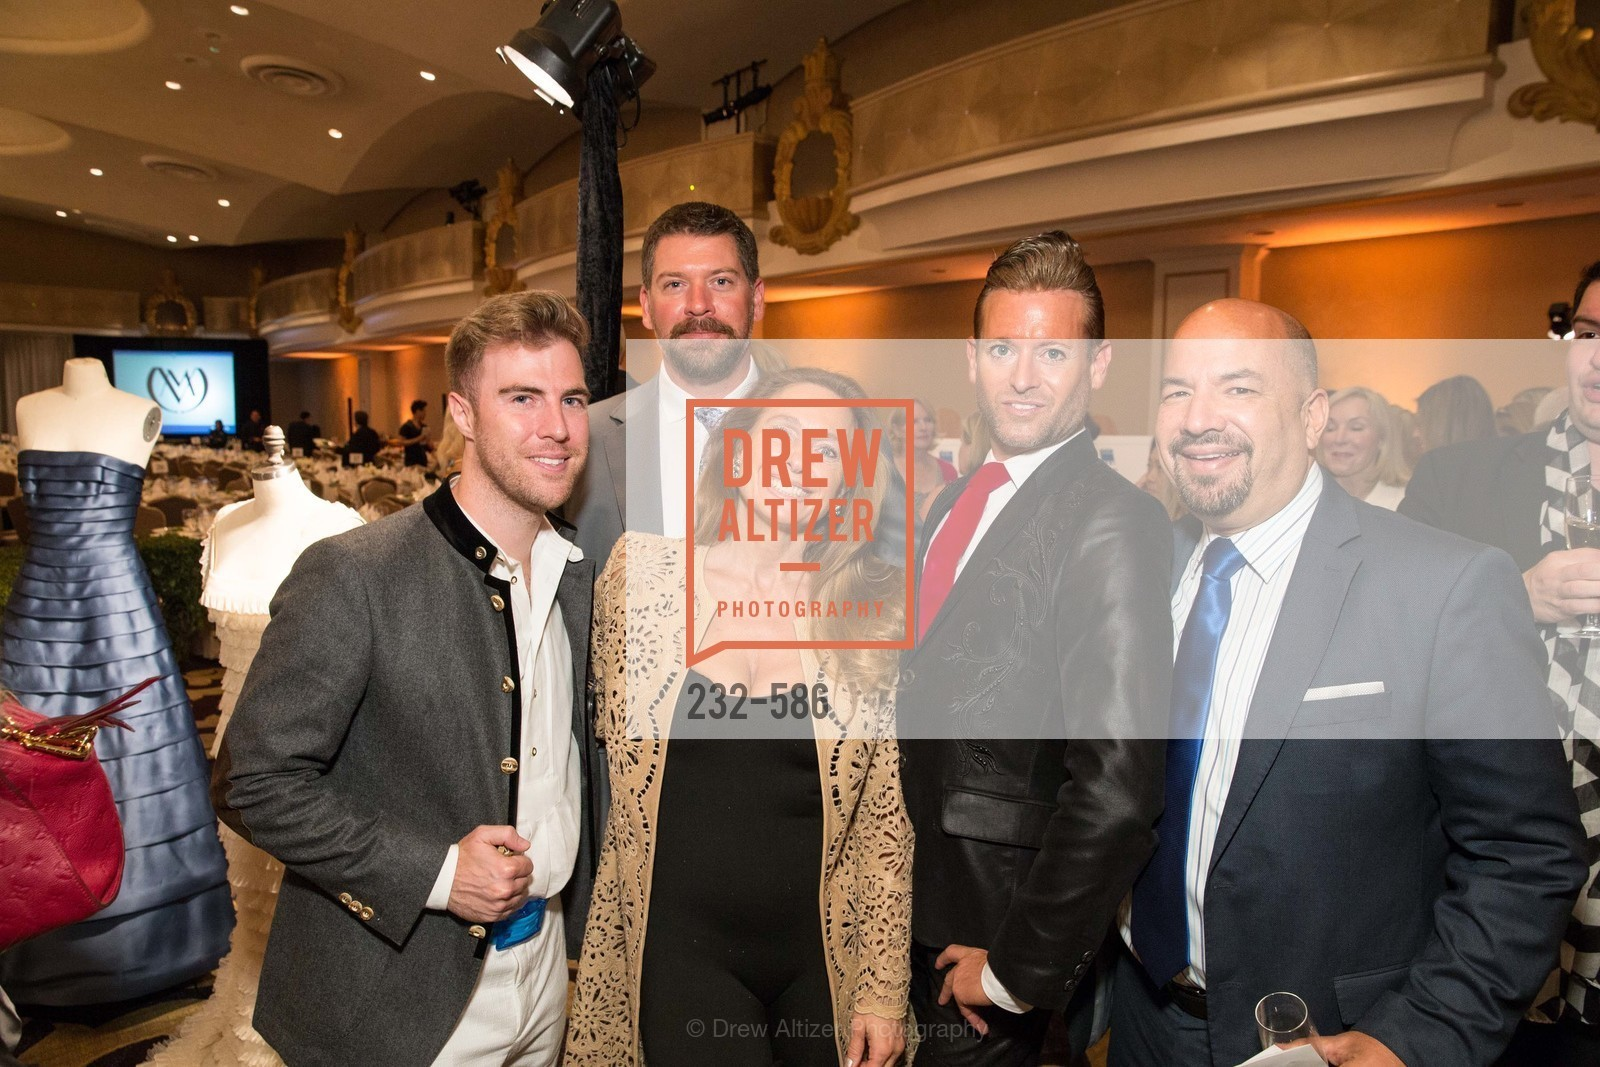 Matthew Kimball, Peter Lago, Elisabeth Thieriot, Patrik Gallineaux, Ted Hannig, 2014 Bay Area ARTHRITIS AUXILLIARY Benefit & Fashion Show, US, October 2nd, 2014,Drew Altizer, Drew Altizer Photography, full-service agency, private events, San Francisco photographer, photographer california